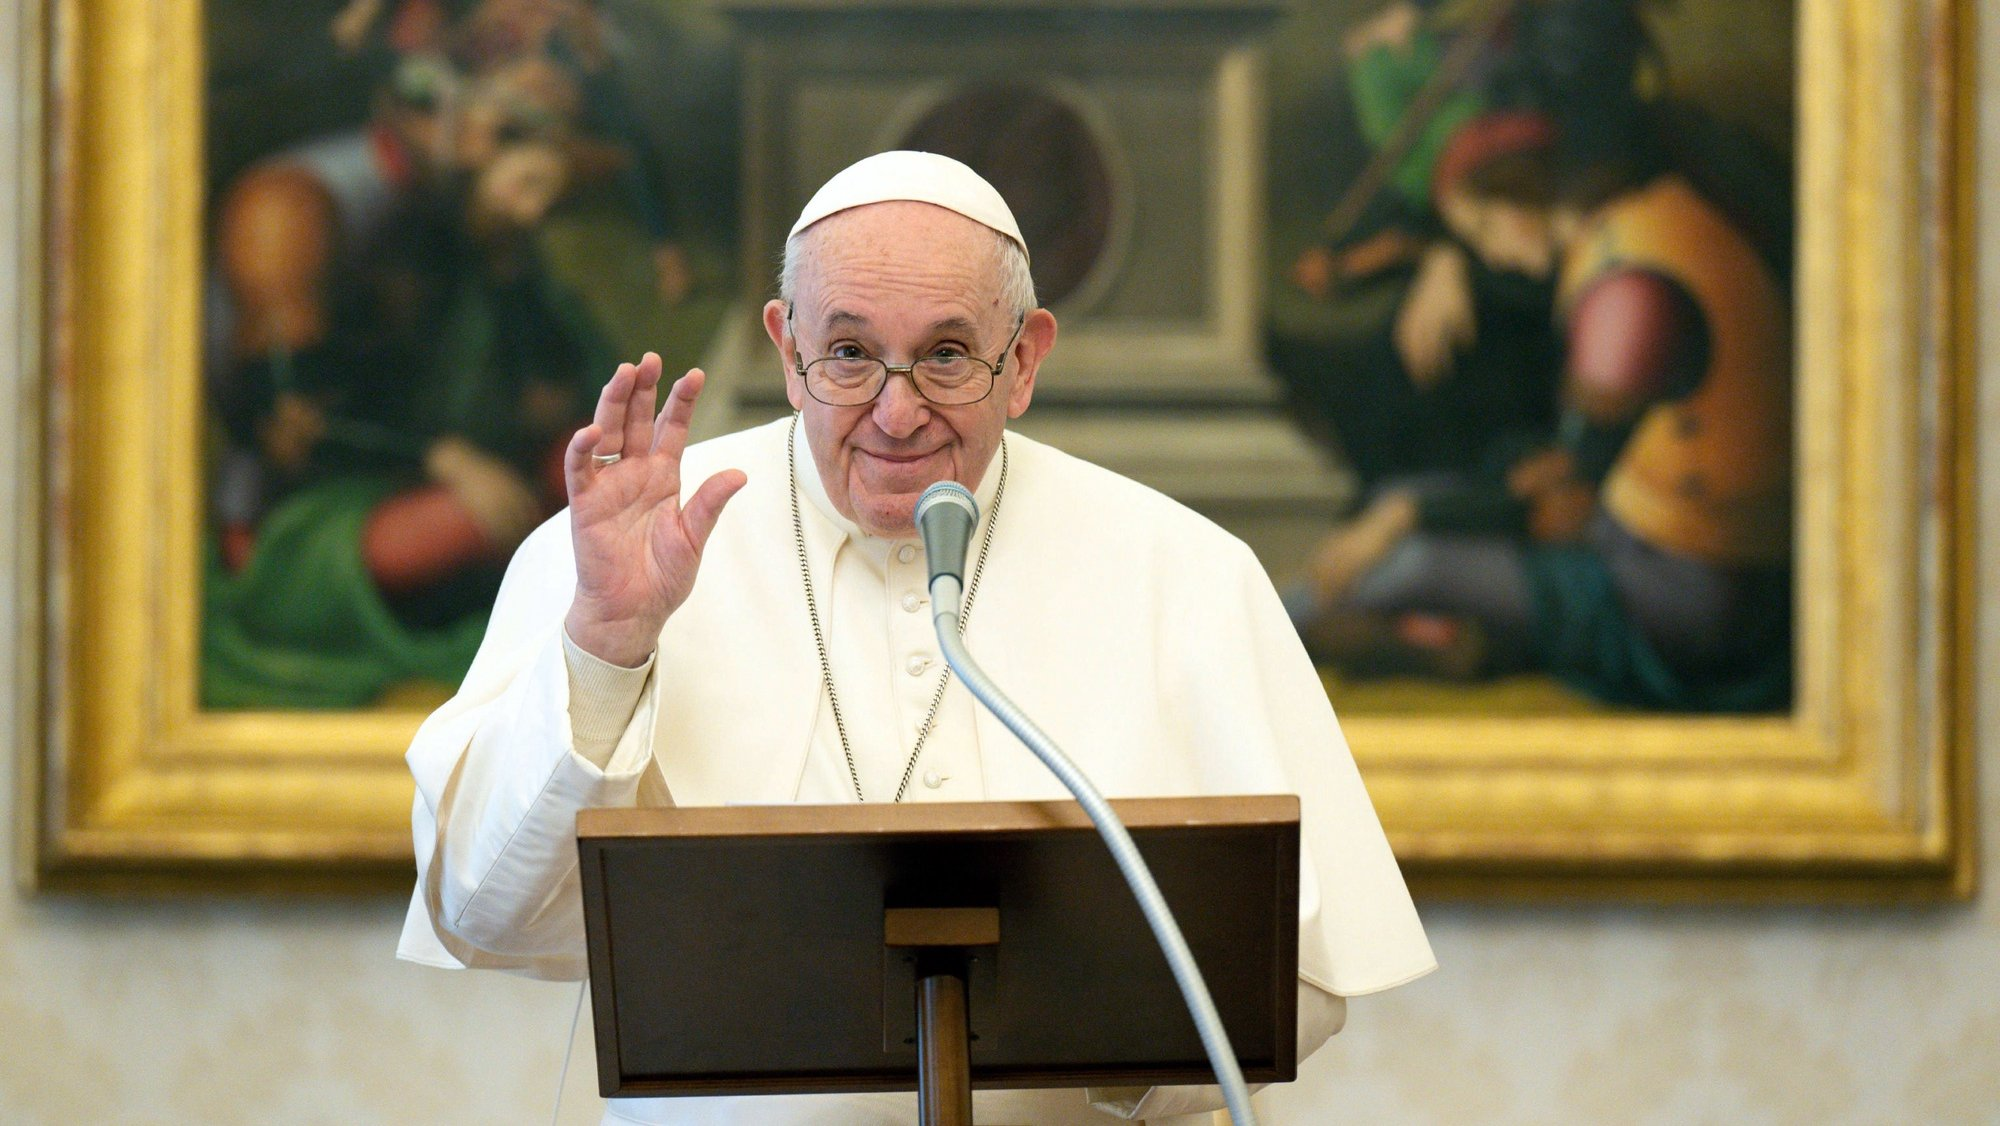 epa08945779 A handout picture provided by the Vatican Media shows Pope Francis Pope delivering a live-streamed weekly Angelus prayer from the Apostolic Palace's library at The Vatican, 17 January 2021 (issued 18 January 2021).  EPA/VATICAN MEDIA HANDOUT  HANDOUT EDITORIAL USE ONLY/NO SALES